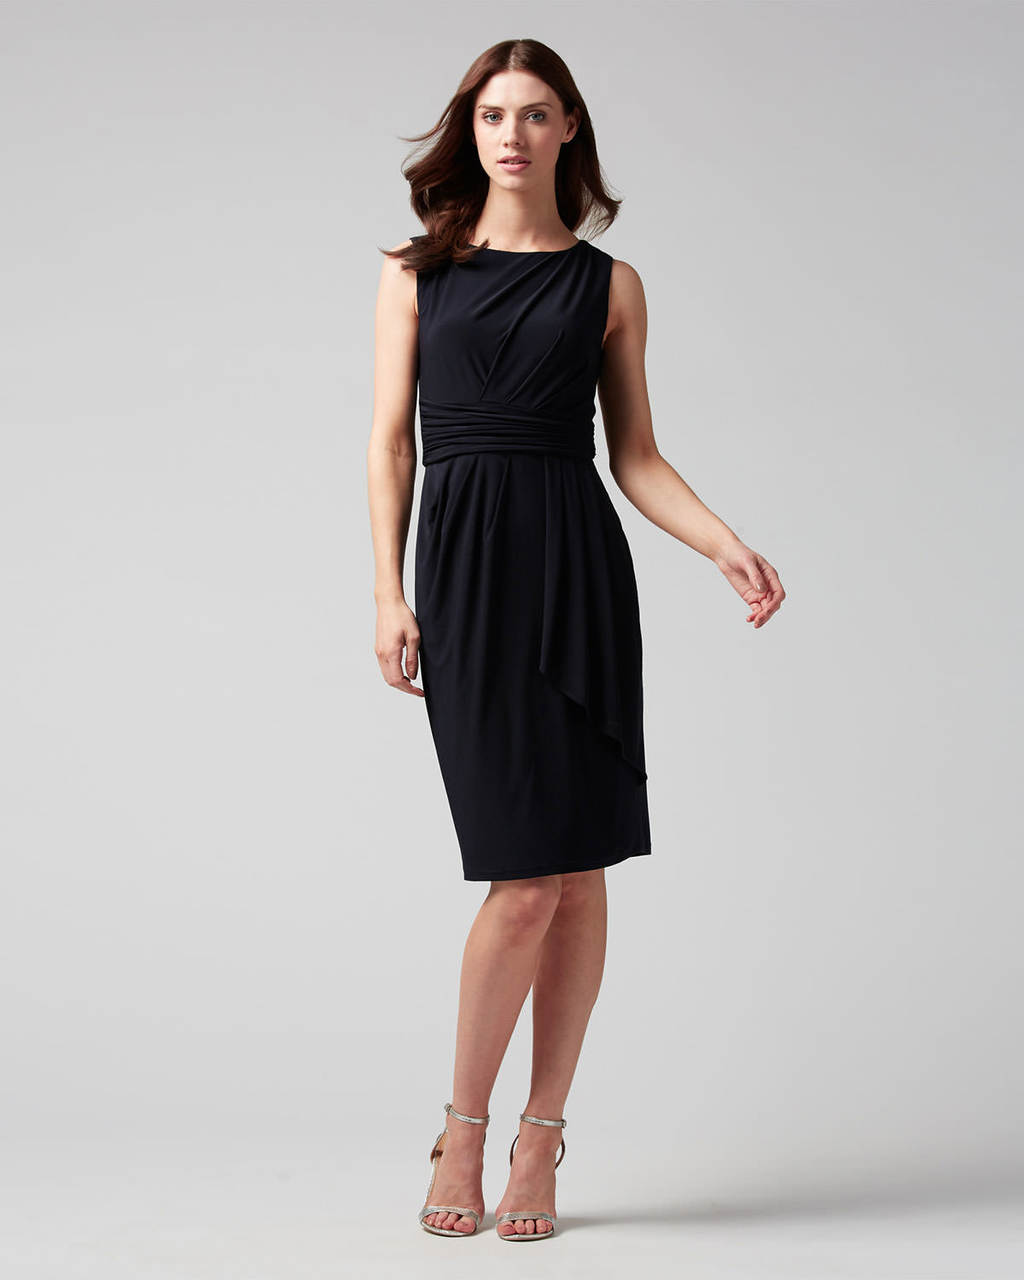 Cordelia Dress - style: shift; fit: tailored/fitted; pattern: plain; sleeve style: sleeveless; predominant colour: black; length: on the knee; fibres: polyester/polyamide - 100%; occasions: occasion; neckline: crew; sleeve length: sleeveless; pattern type: fabric; texture group: woven light midweight; season: s/s 2016; wardrobe: event